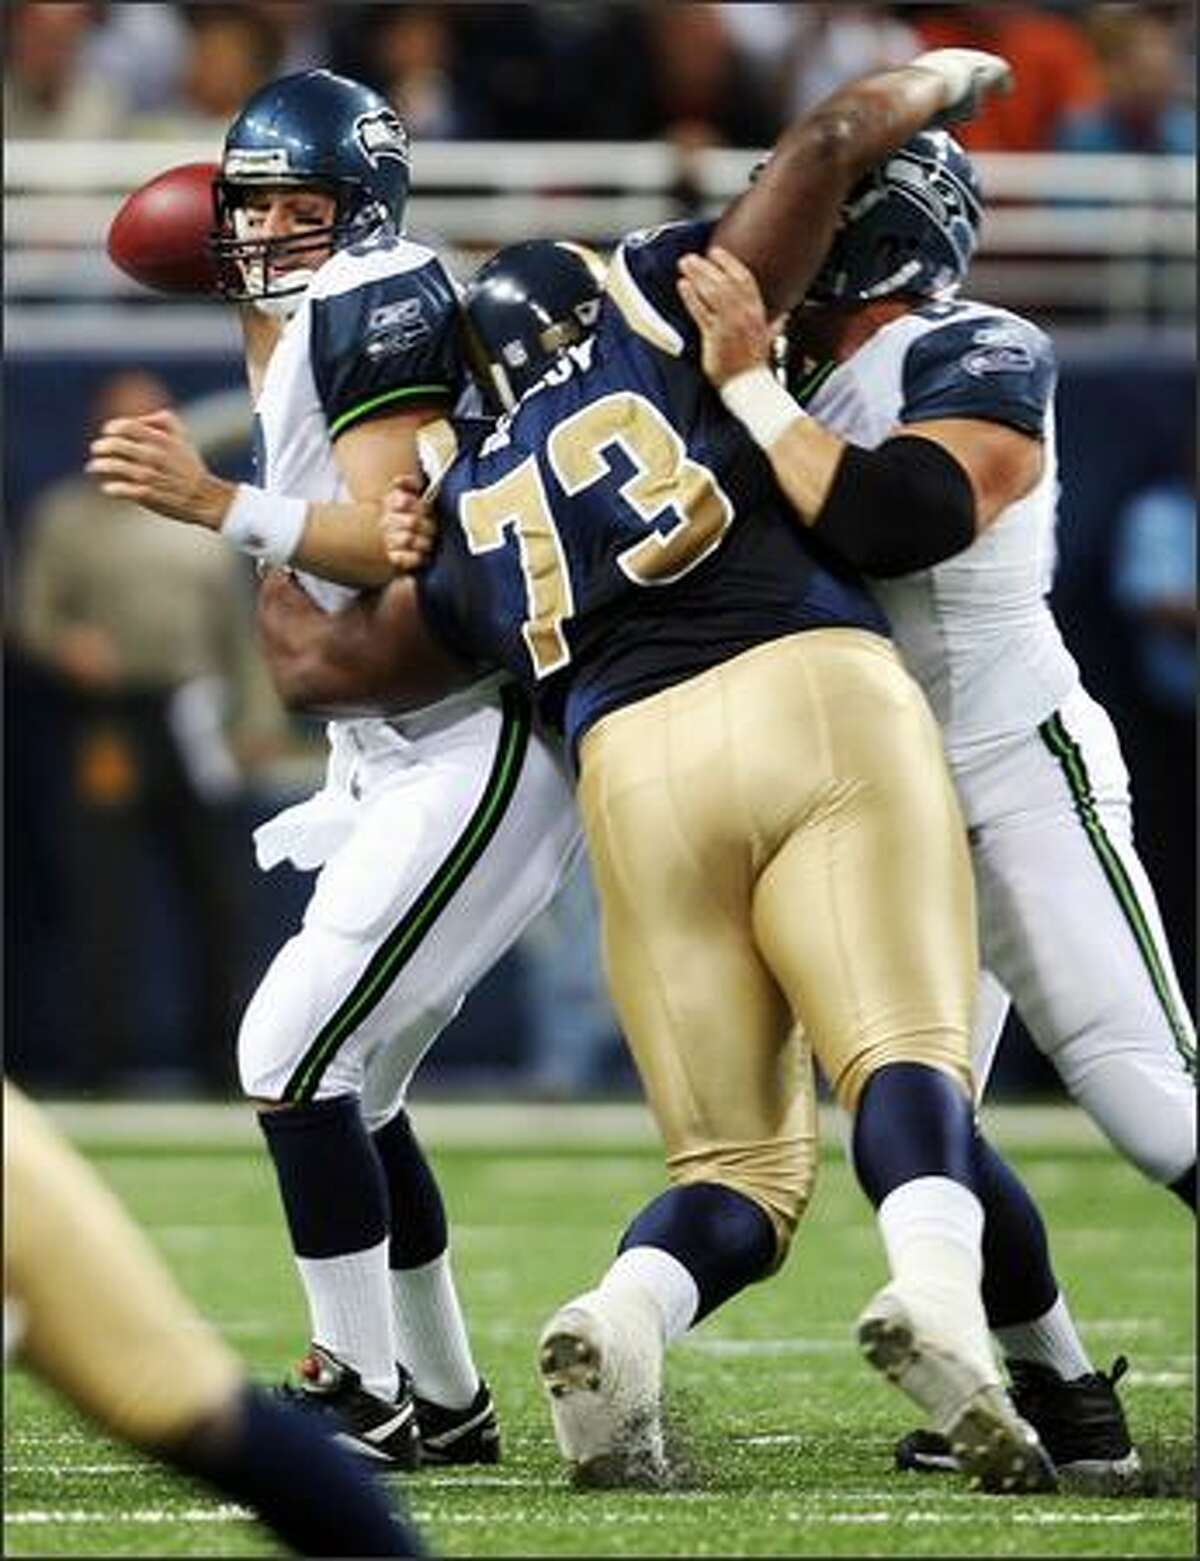 Seahawks Matt Hasselbeck is grabbed by St. Louis Rams Jimmy Kennedy during first quarter action at the Edward Jones Dome in St. Louis.